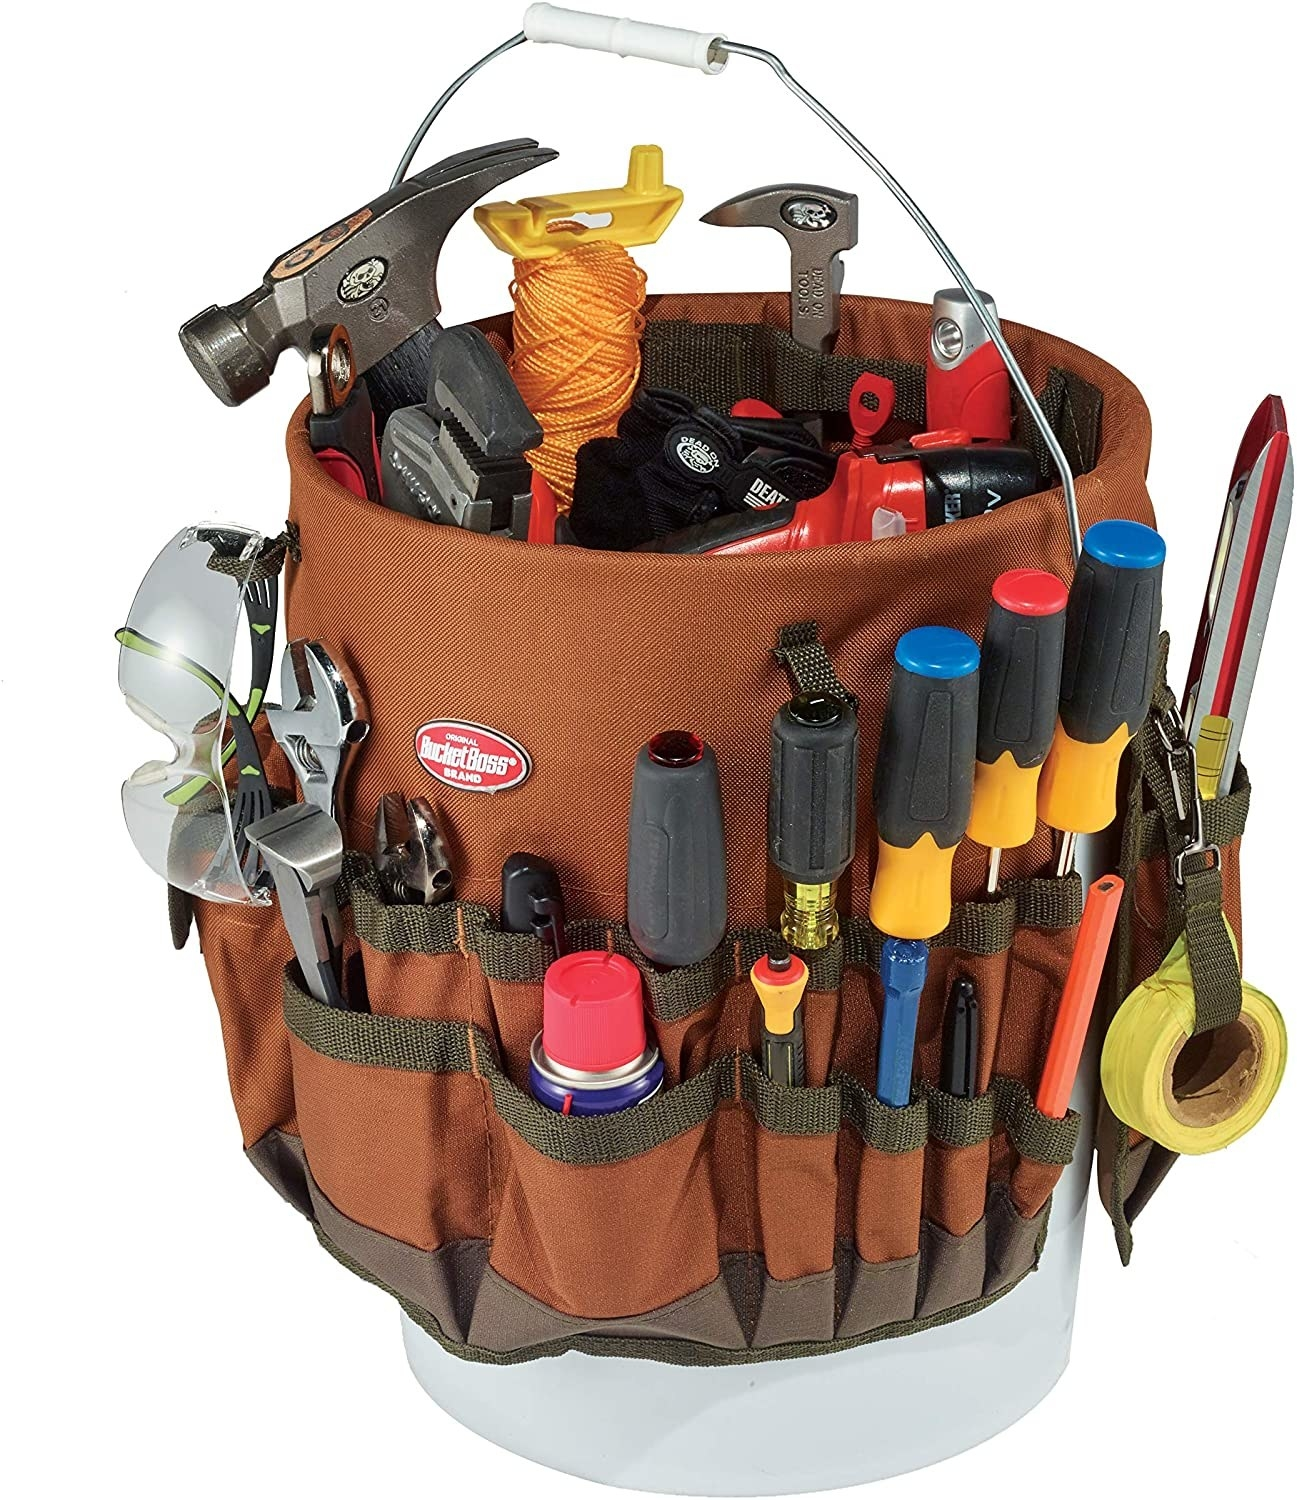 A brown bucket organizer made from denier poly ripstop fabric filled with tools